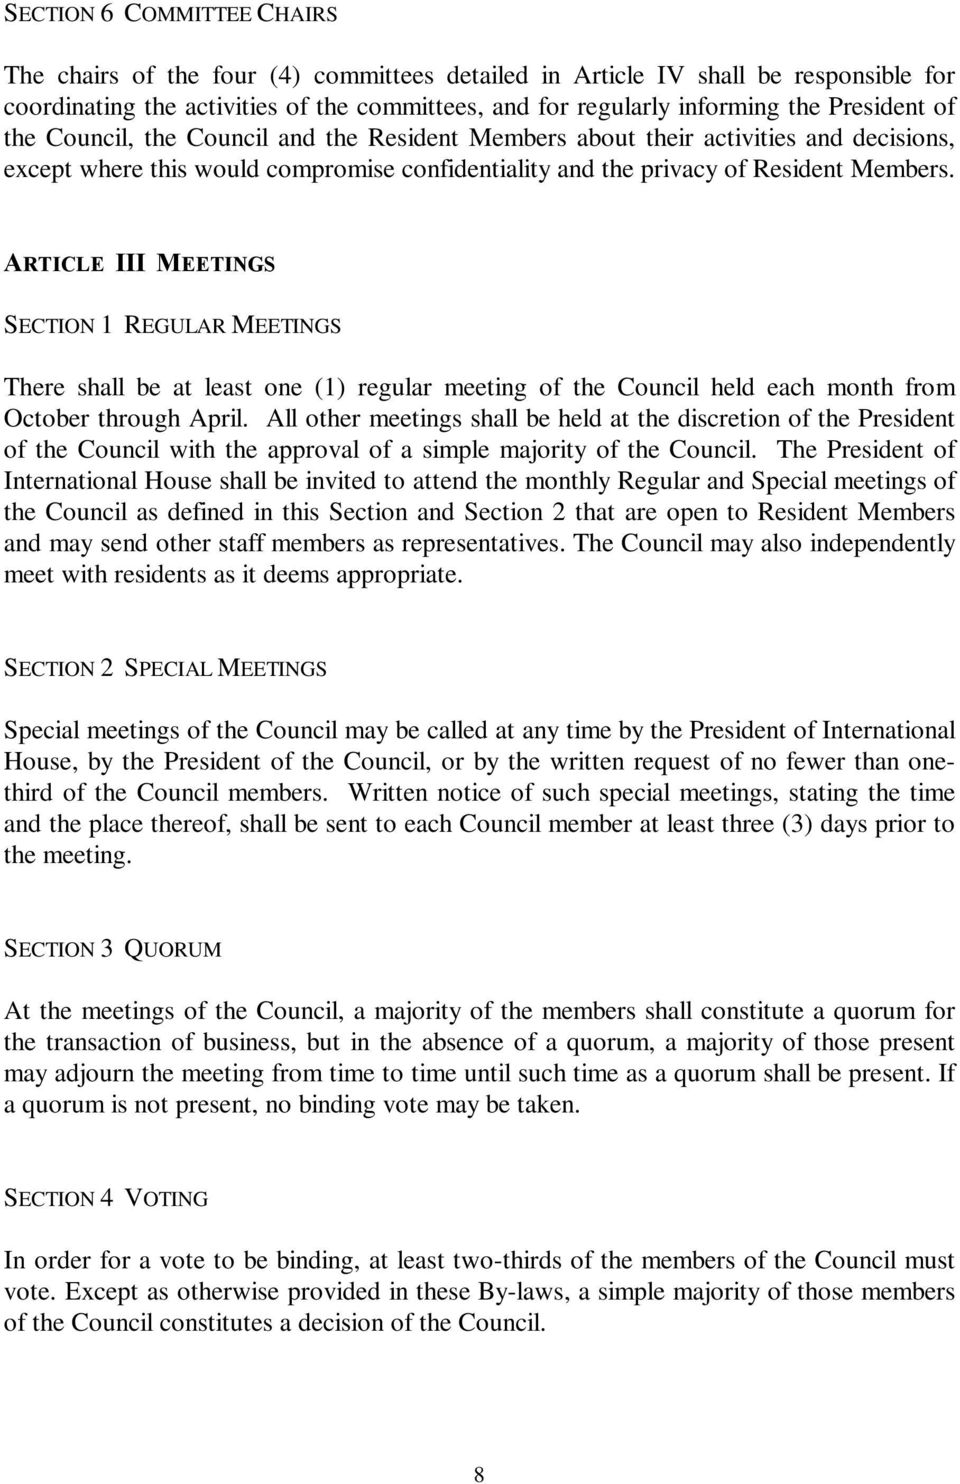 ARTICLE III MEETINGS SECTION 1 REGULAR MEETINGS There shall be at least one (1) regular meeting of the Council held each month from October through April.